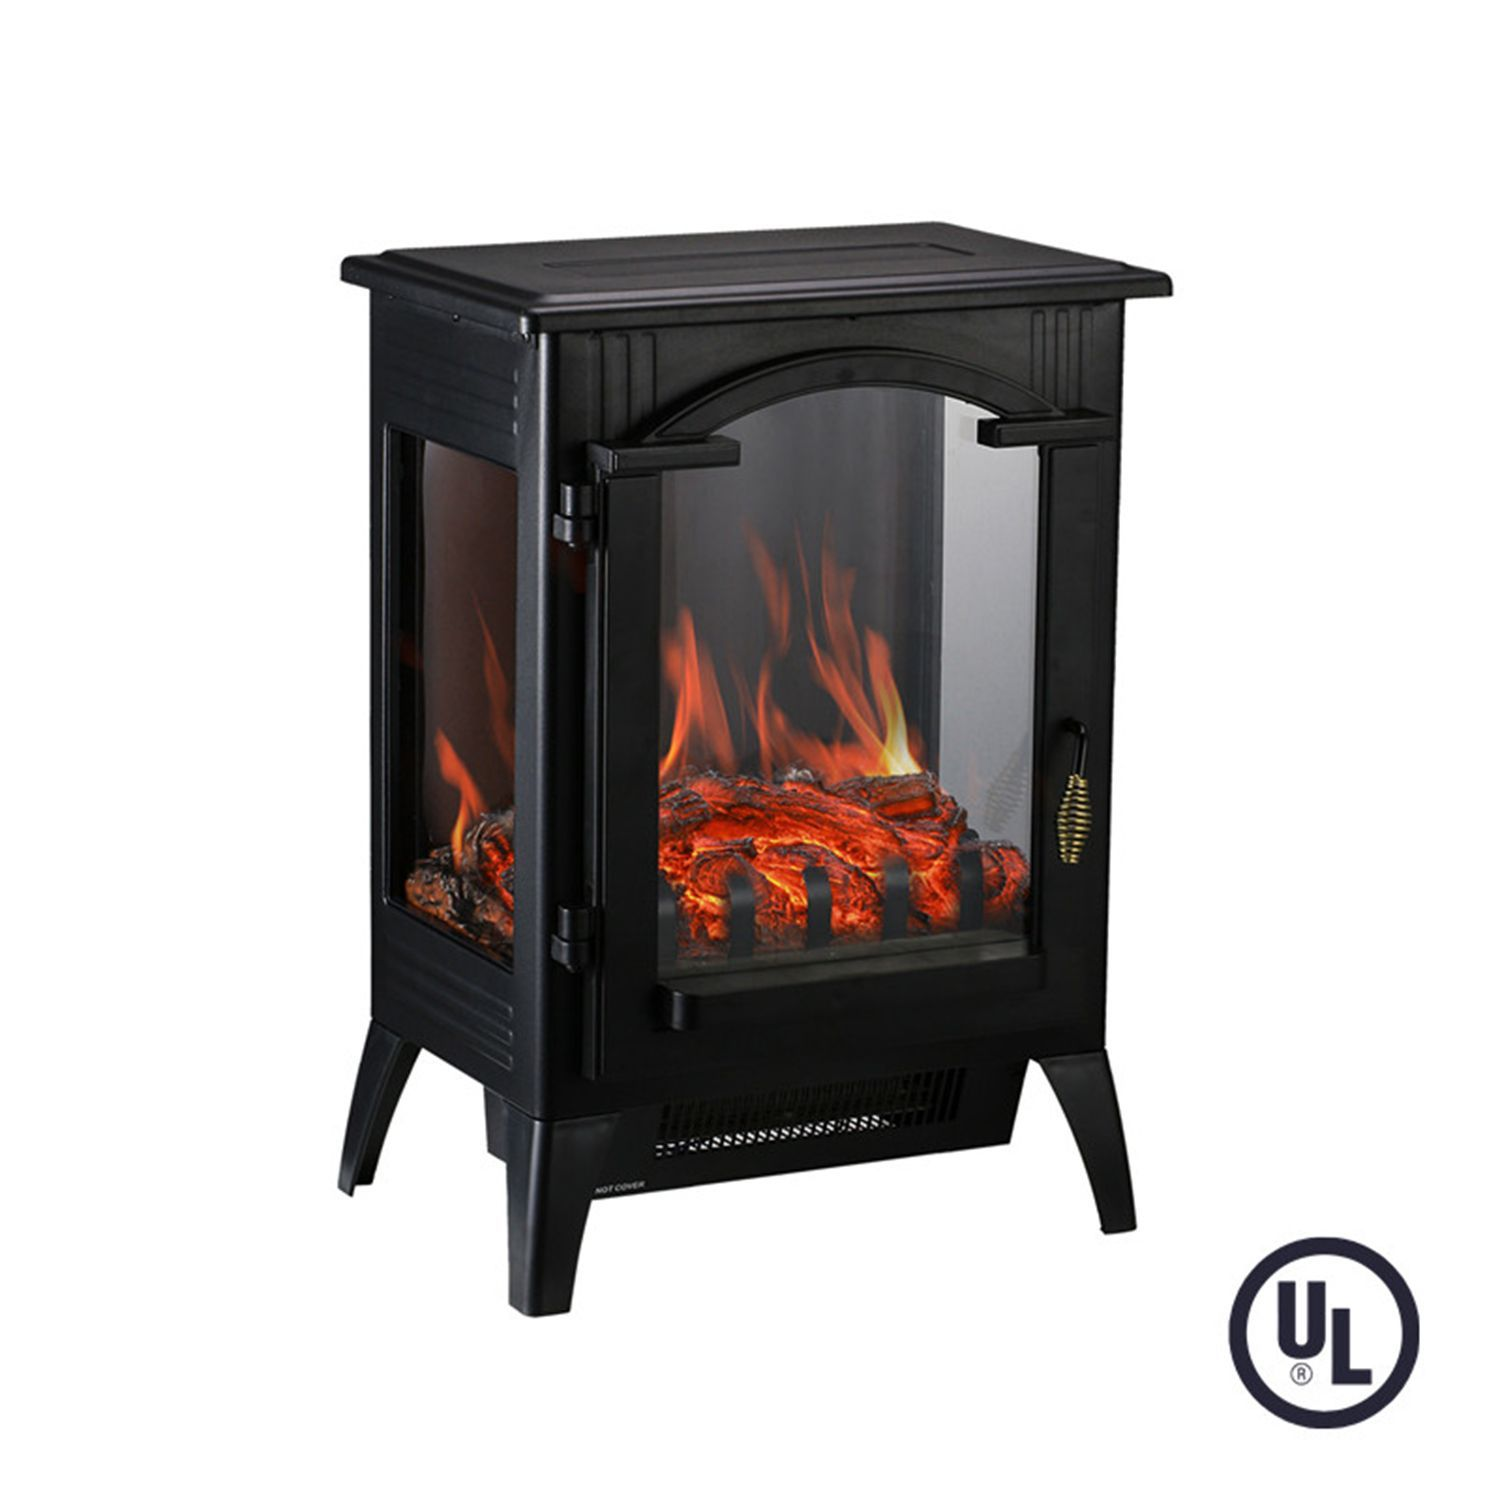 Portable Indoor Home Compact Electric Wood Stove Fireplace Heater With Thermostat For Off Portable Electric Fireplace Electric Wood Stove Wood Stove Fireplace